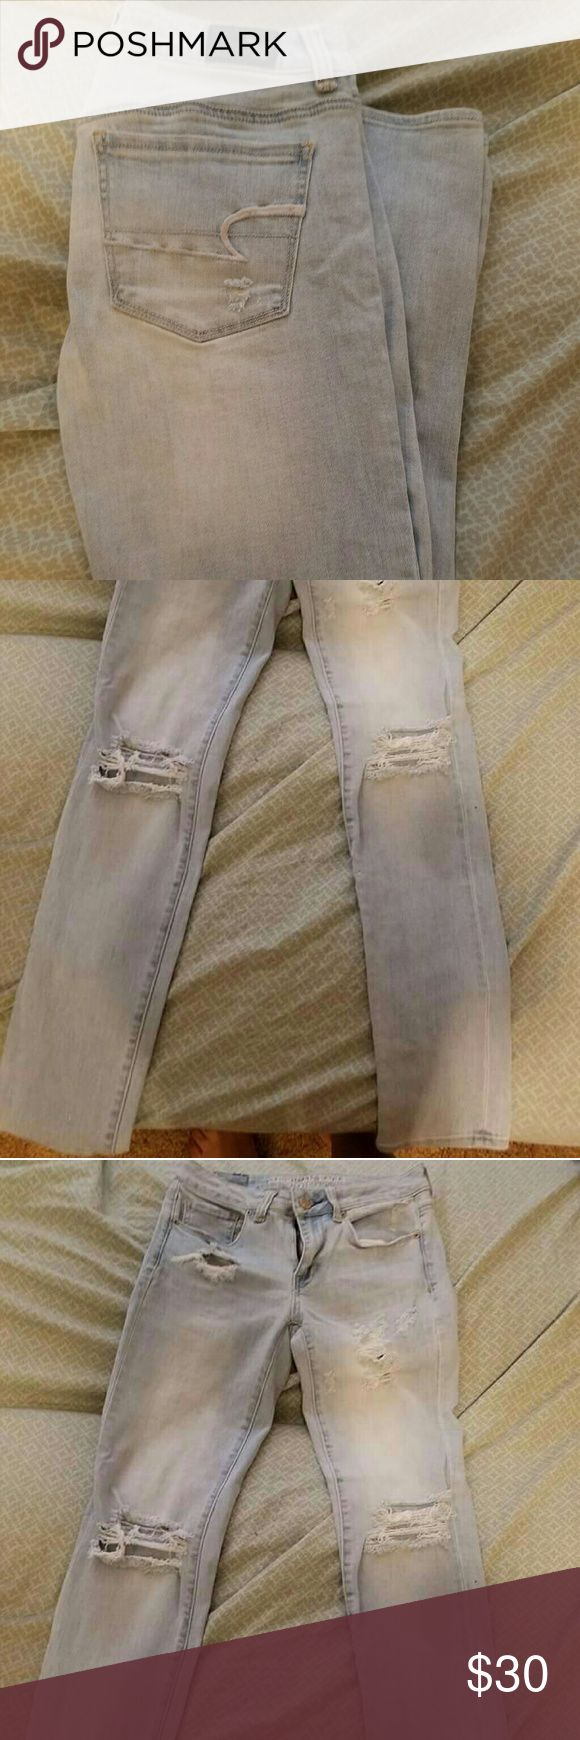 American Eagle Jeans Worn once, I'm a size 2 or 4 in AE jeans depends oh the jeans but I order them online and its a hassle to return since we don't have AE store at the mall American Eagle Outfitters Pants Skinny